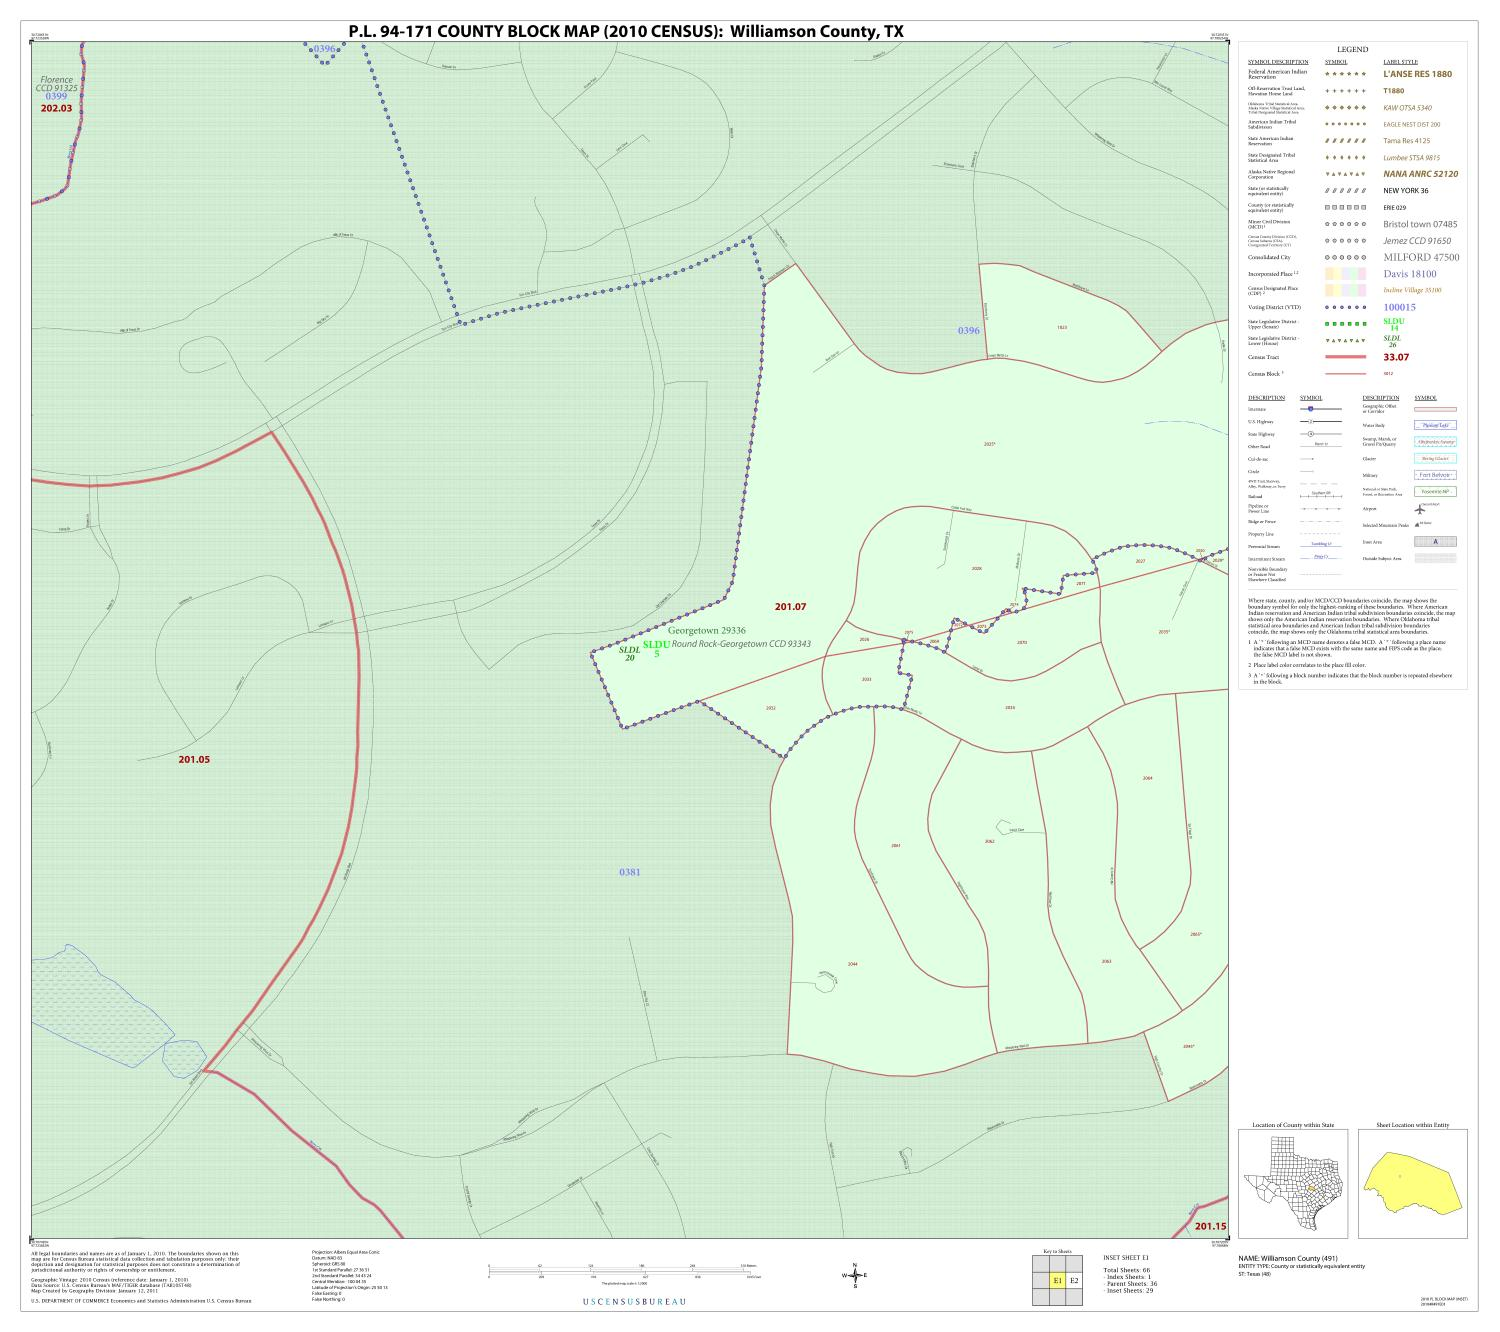 P.L. 94-171 County Block Map (2010 Census): Williamson County, Inset E01                                                                                                      [Sequence #]: 1 of 1